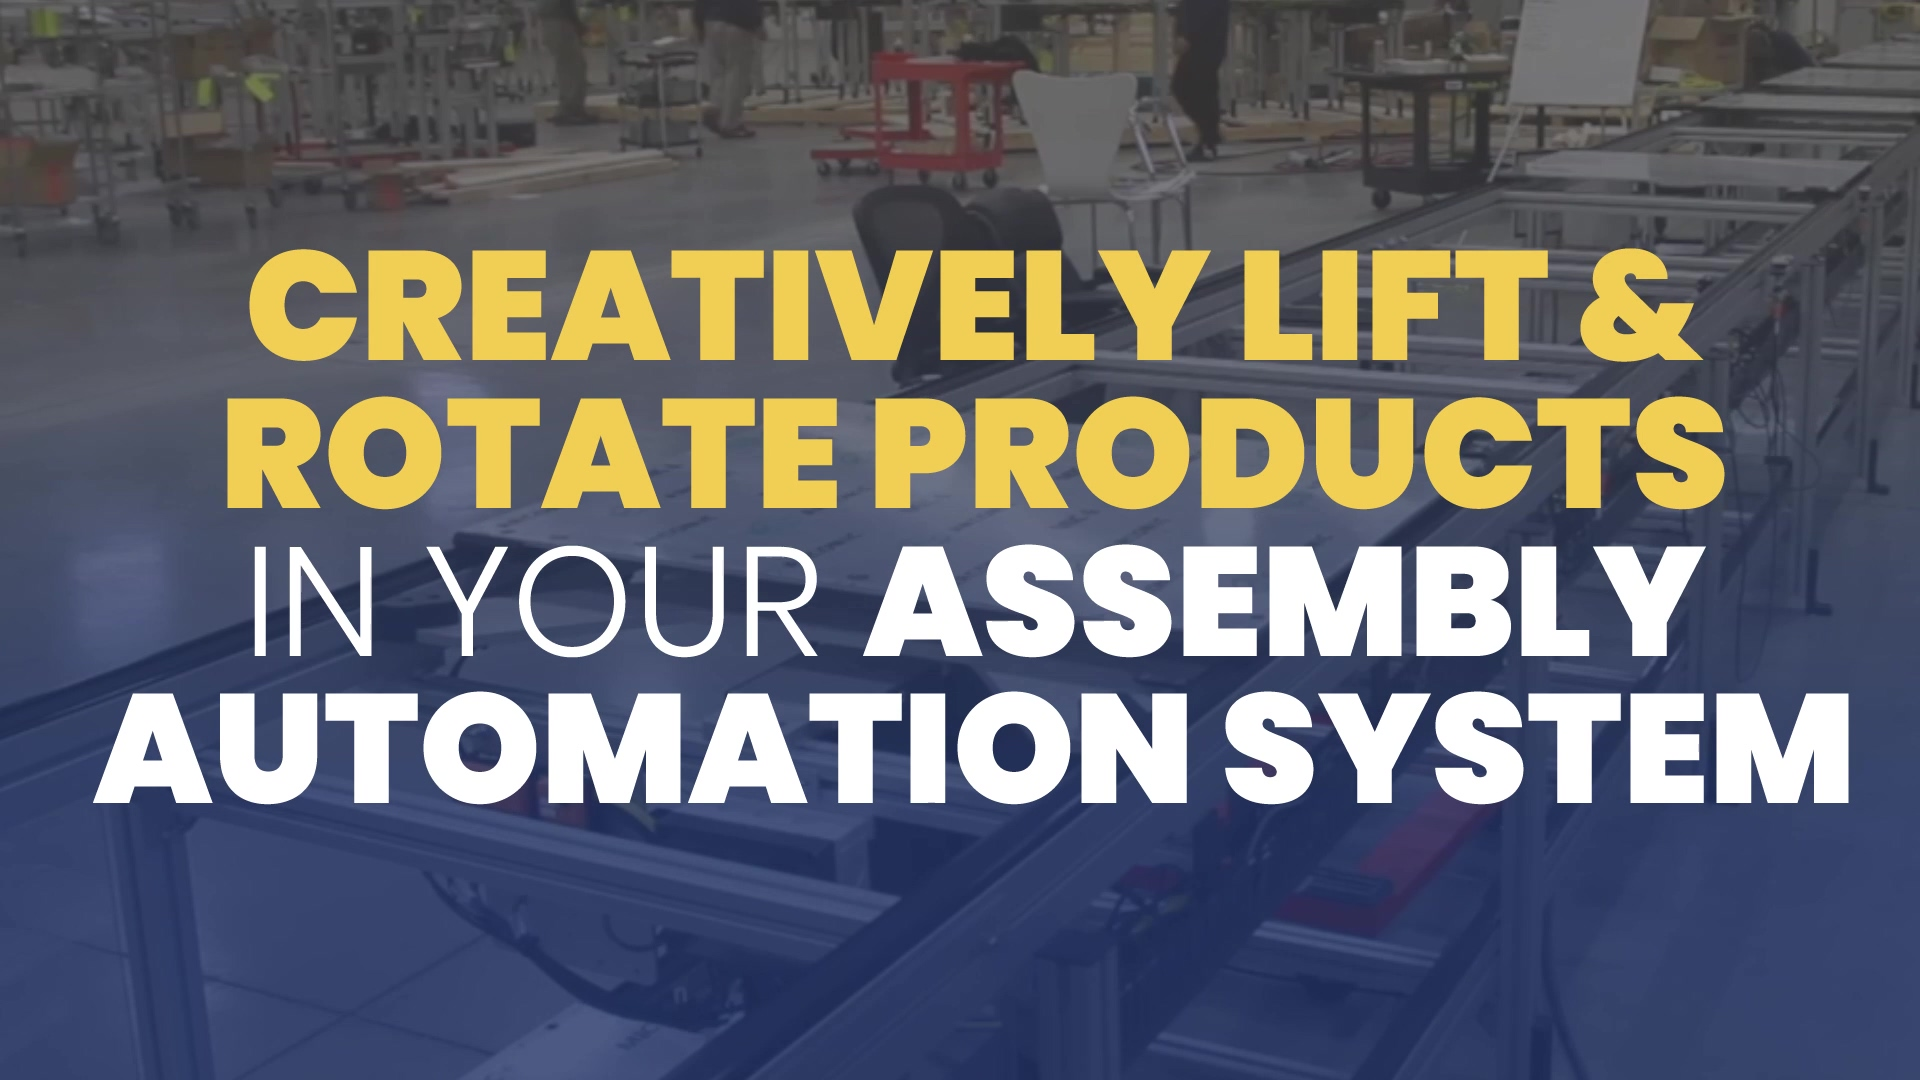 The Guide To Creatively Lift & Rotate Products in your Assembly Automation System